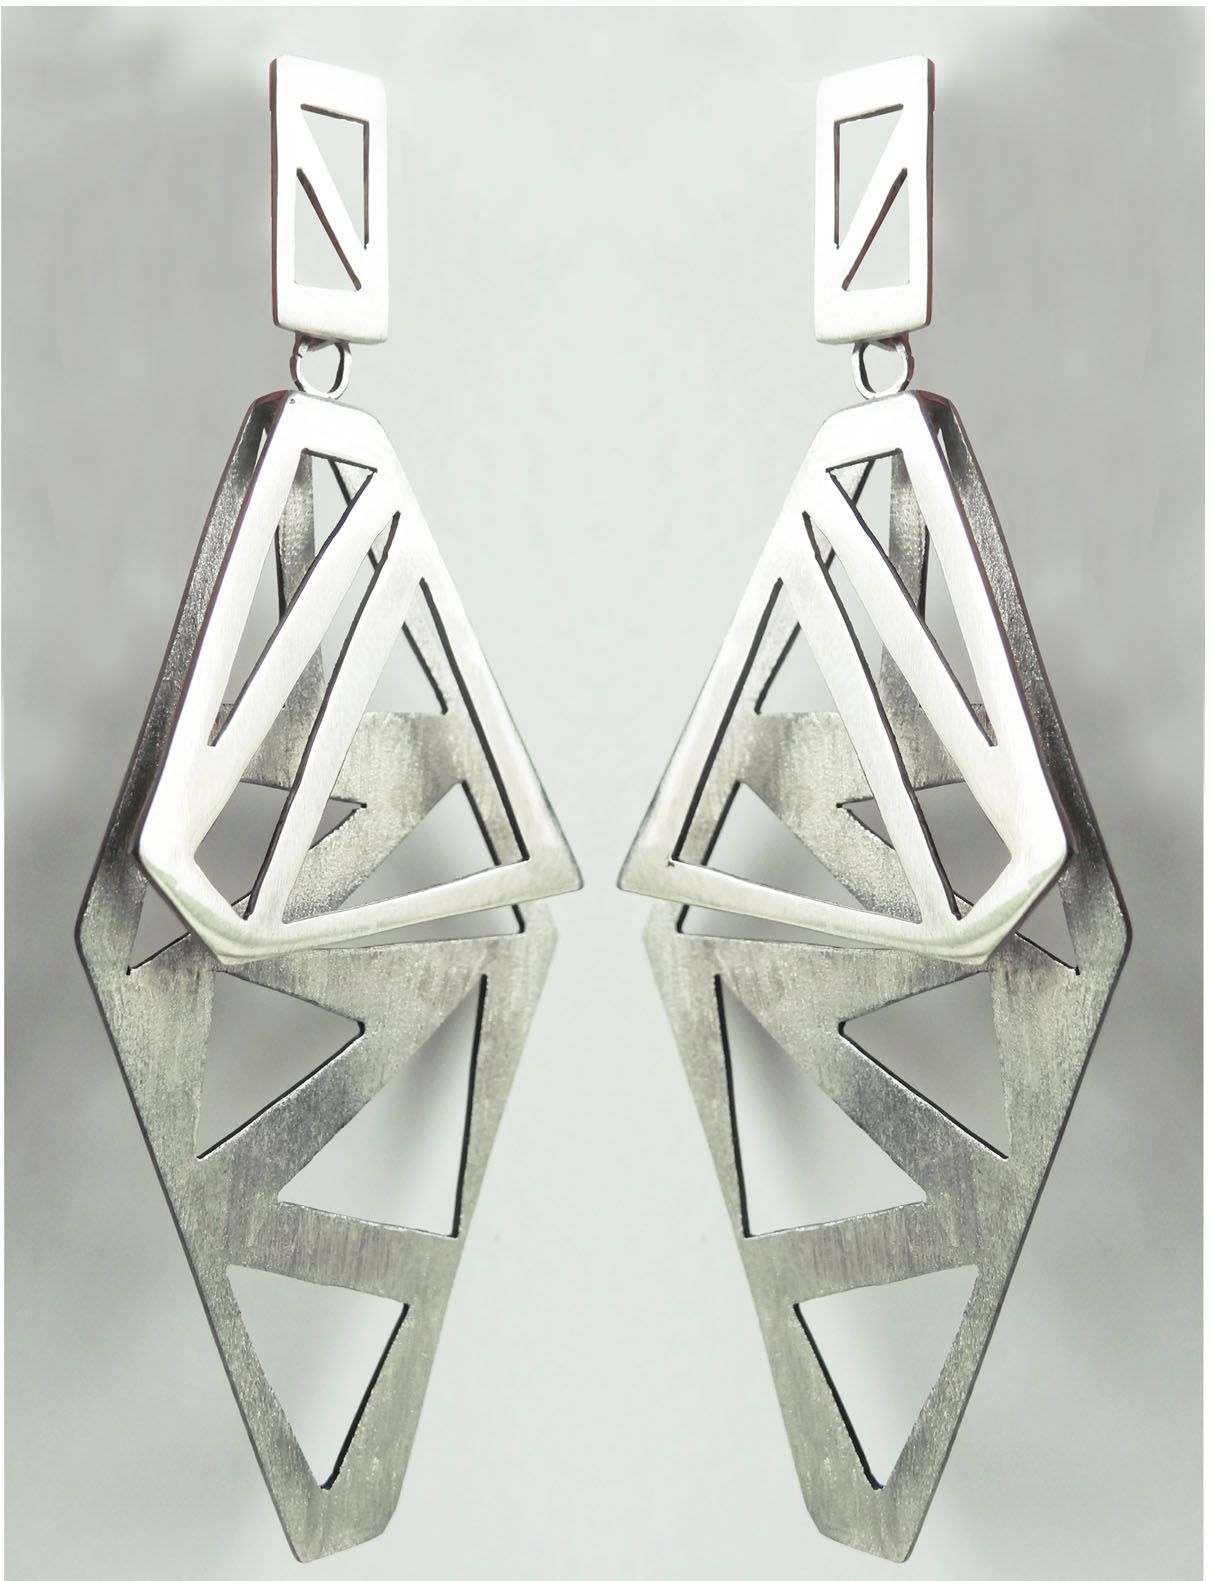 Earrings by Ana Bragança from Portugal. Ana Bragança s jewellery is very  much influenced by her architectural background and this is where its  originality ... 94bfa2ea7c834